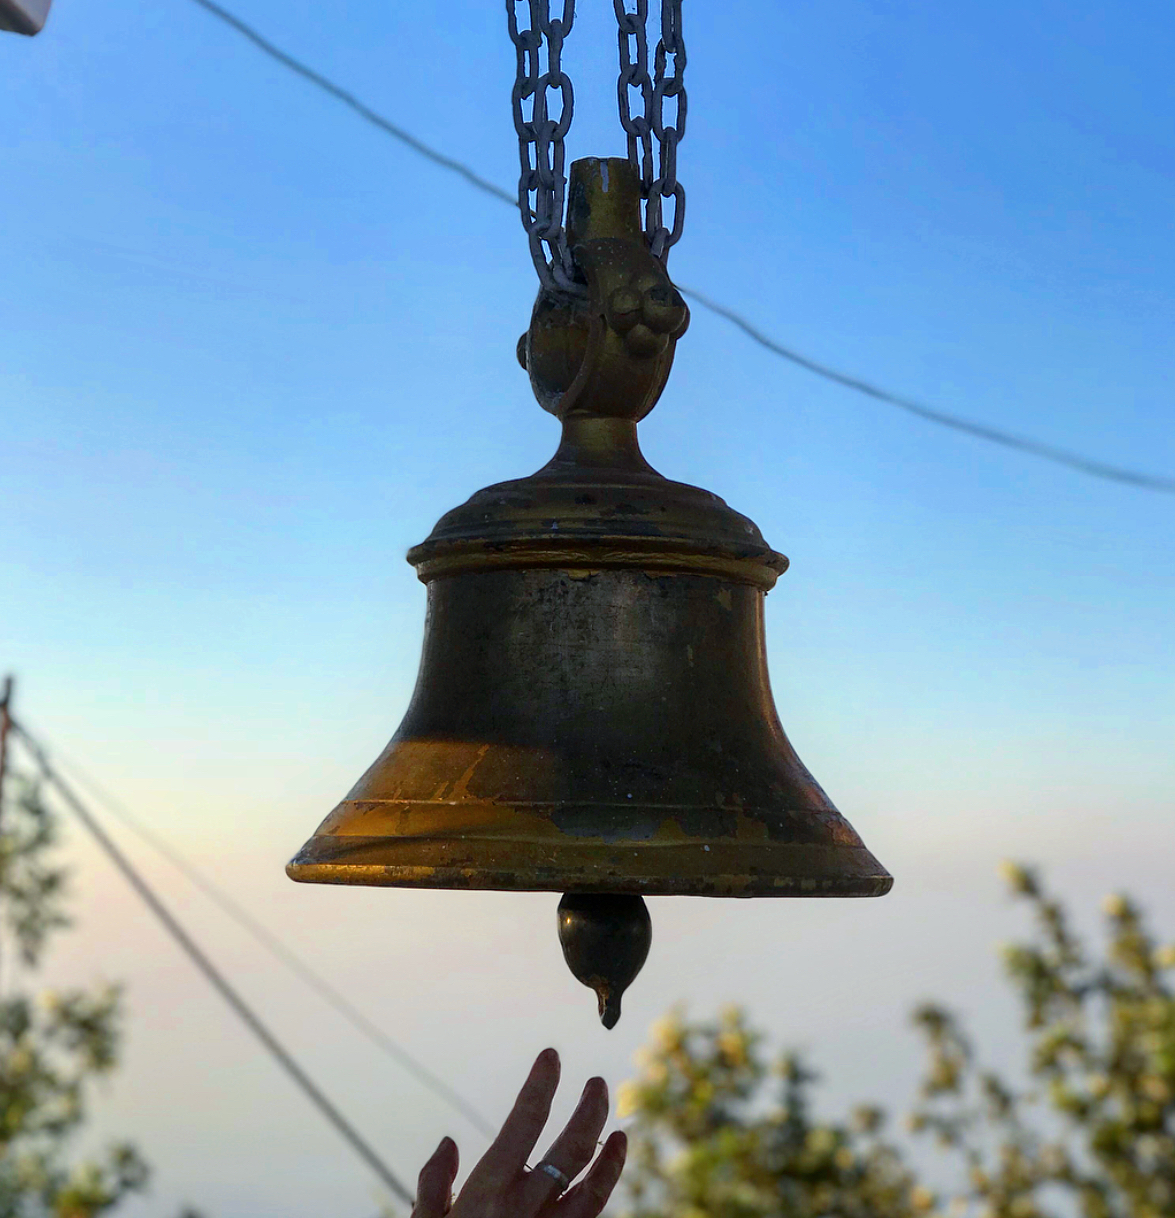 Sounding the temple bell.